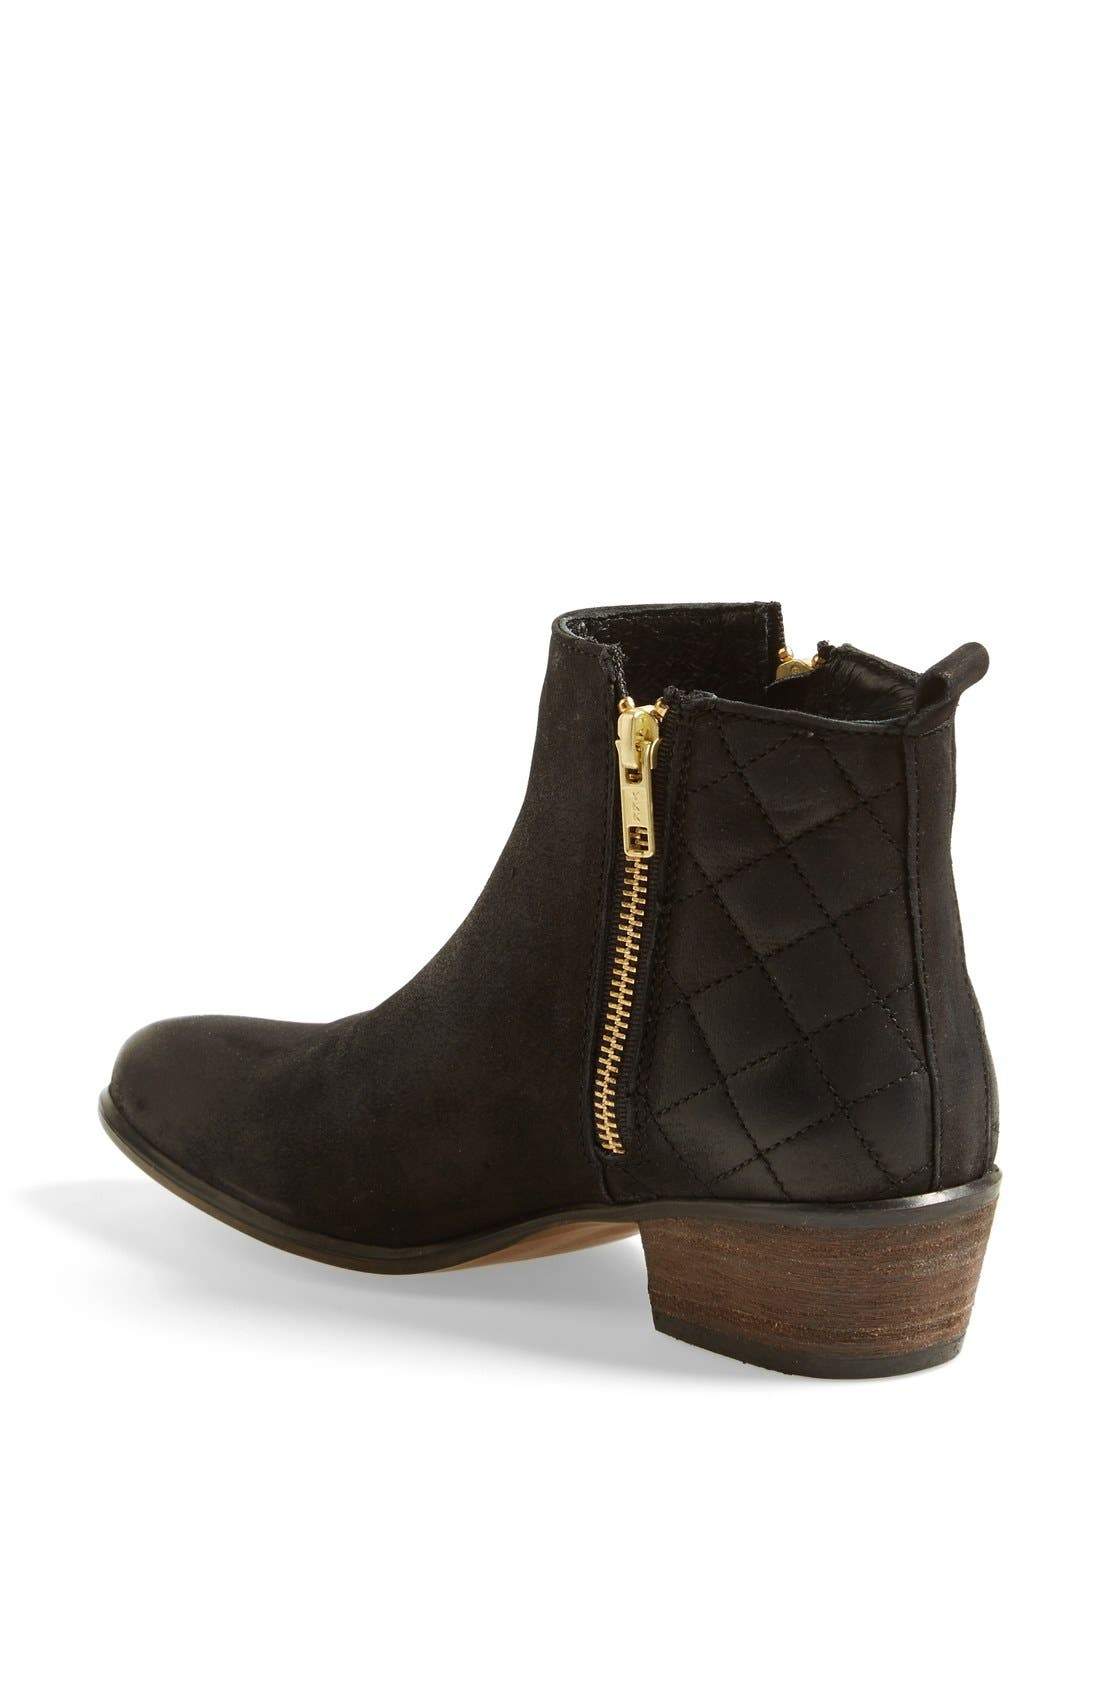 'Nyrvana' Boot,                             Alternate thumbnail 2, color,                             Black Leather